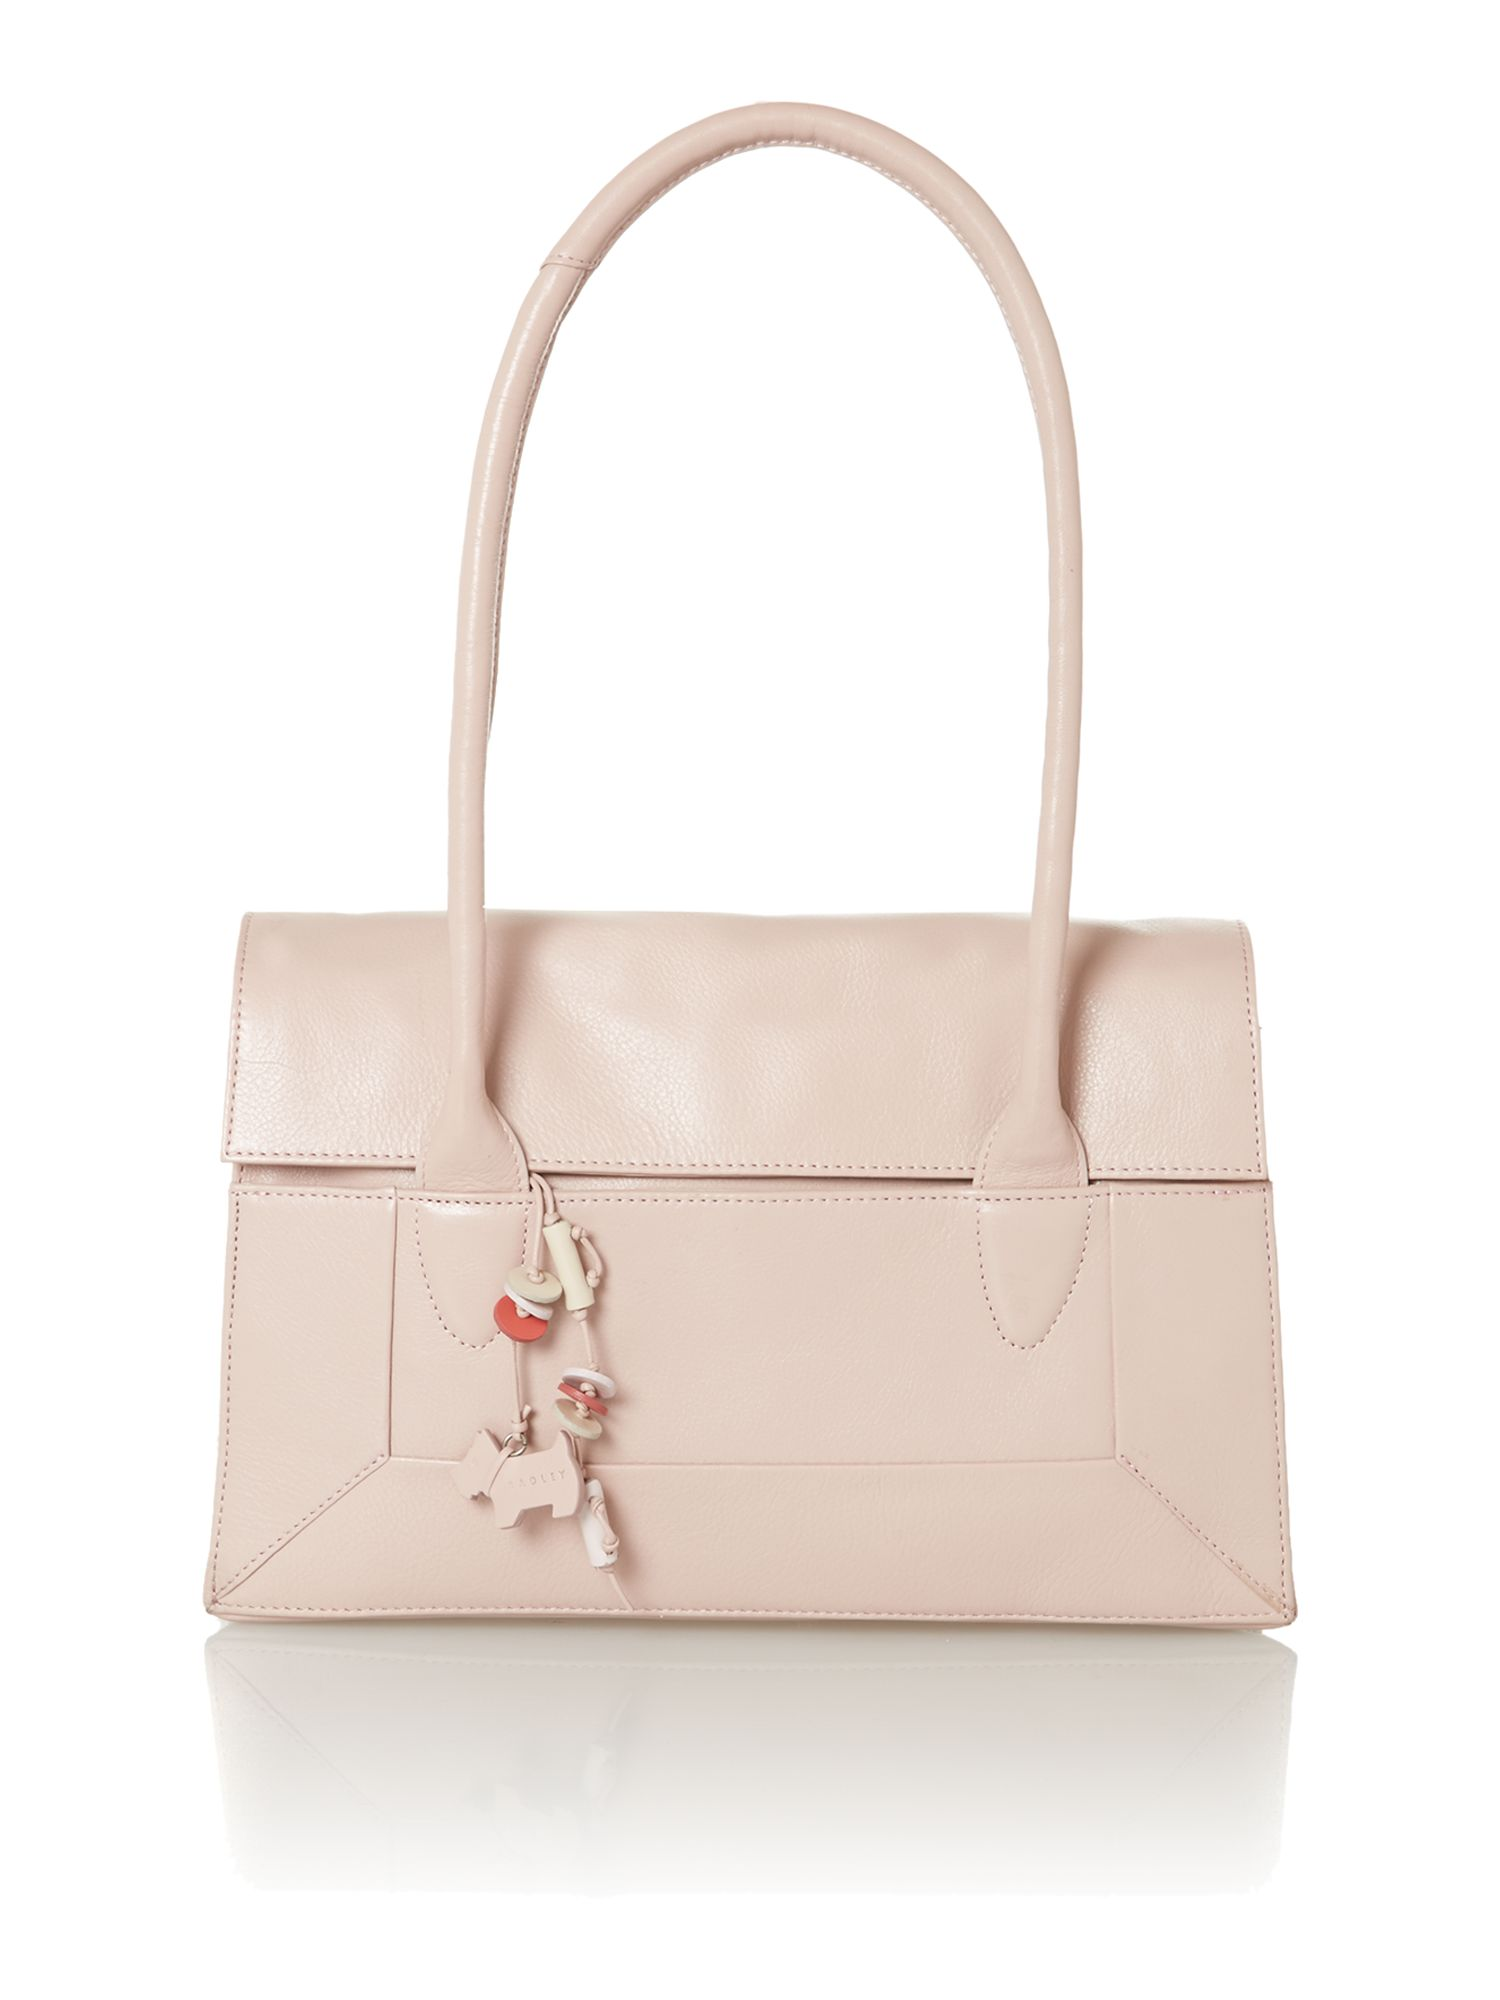 Border pale pink medium foldover tote bag